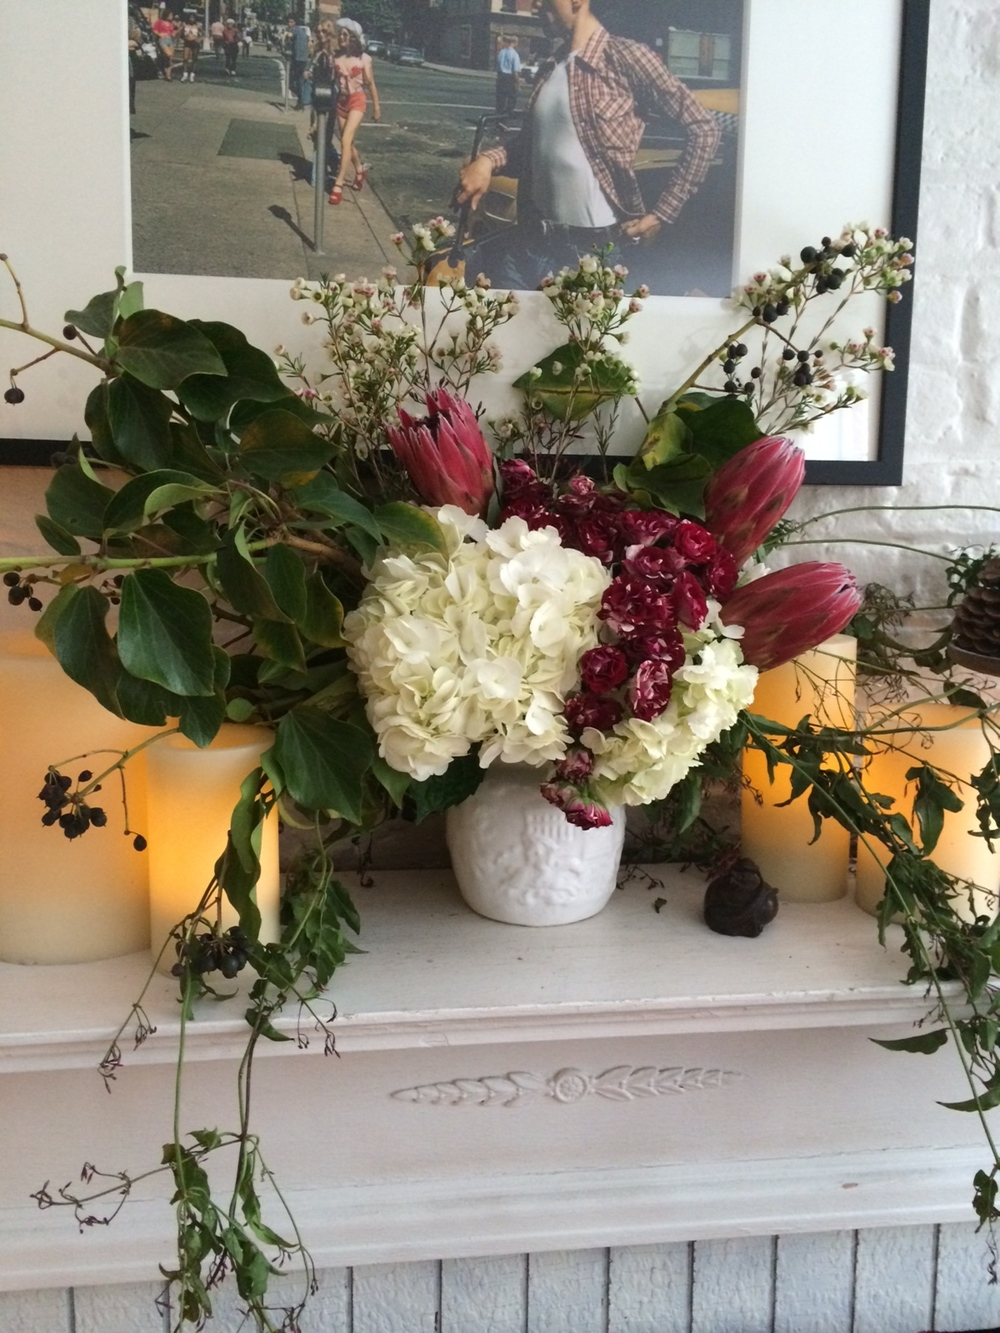 Hydrangea, Protea, Wax flower, Bush Ivy, Jasmine Vine, on mantelpiece